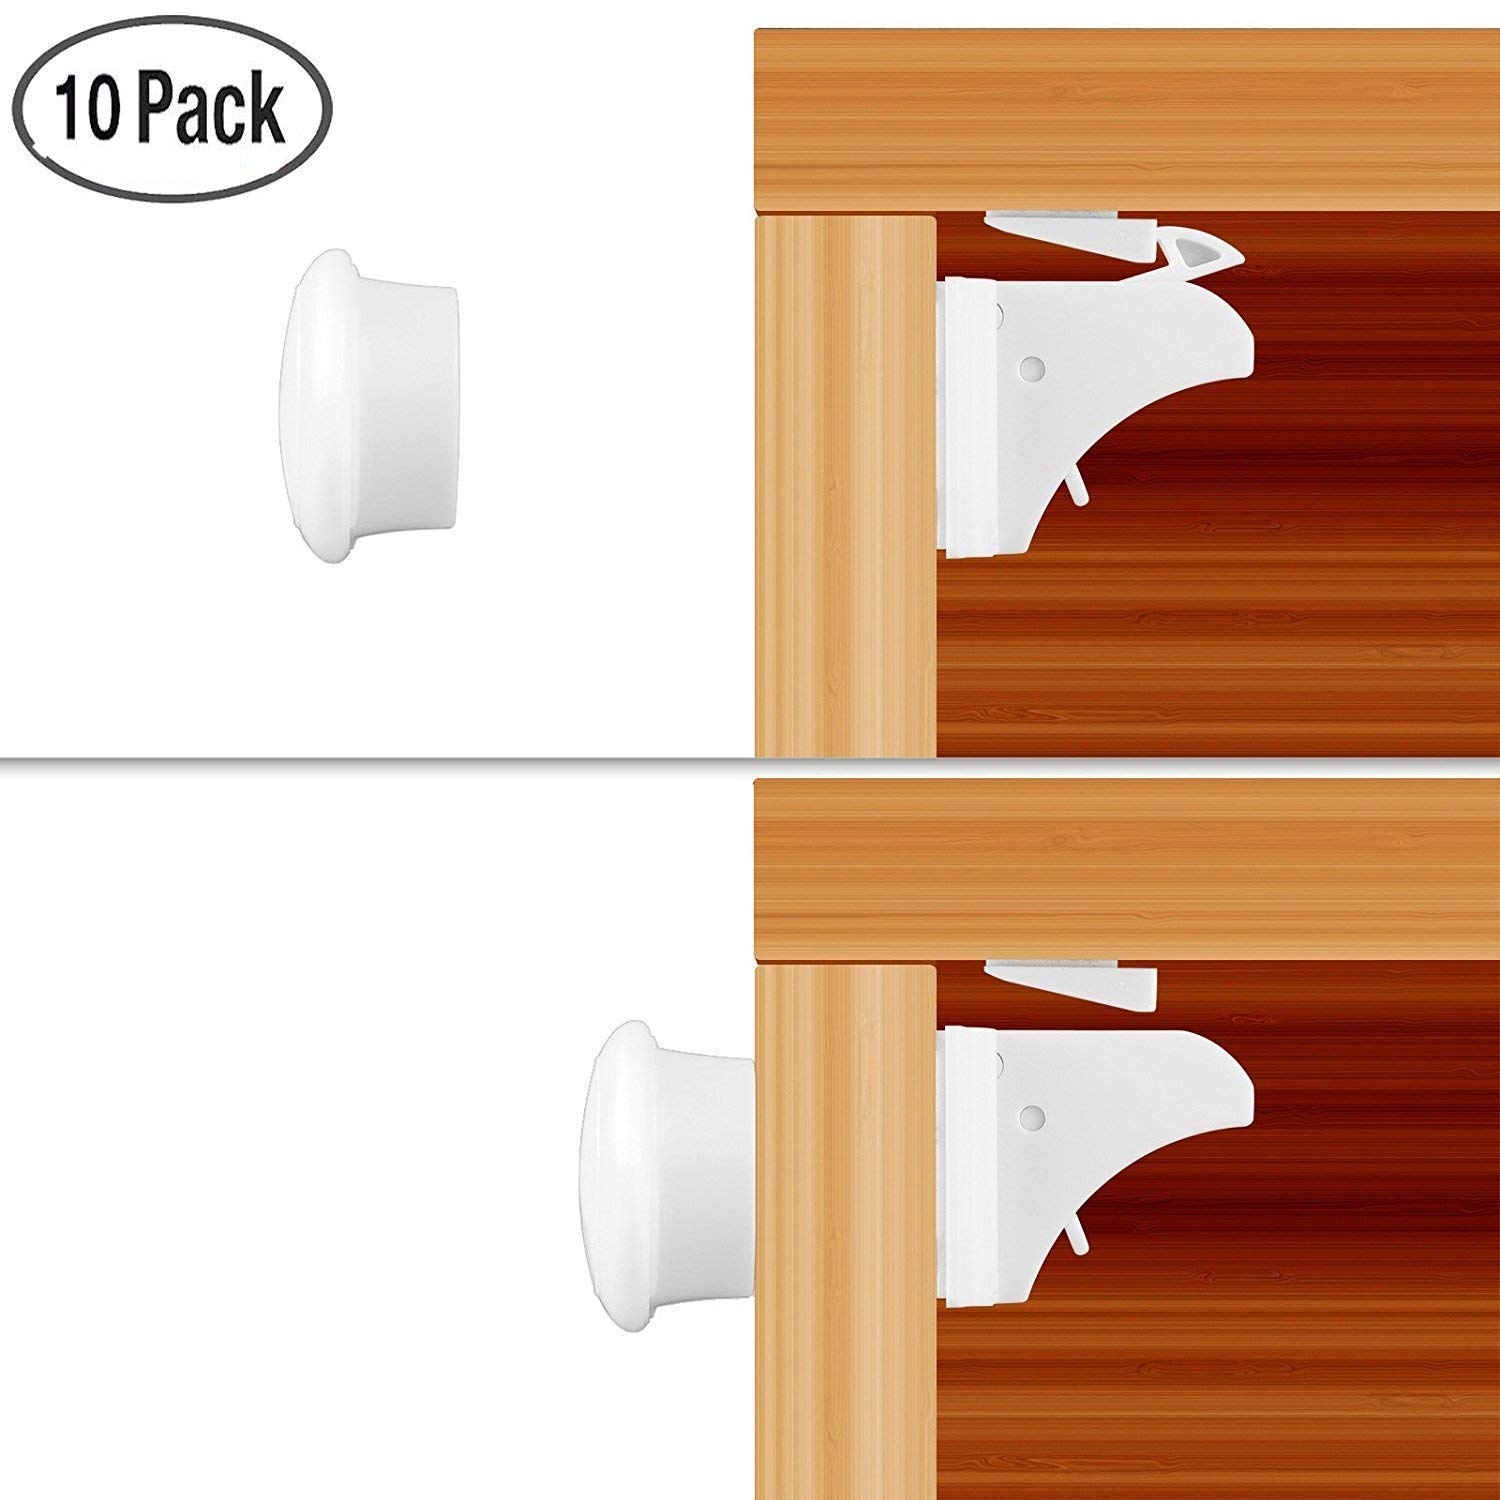 ONEVER Child Safety Cupboard Locks Set 10 Locks+2 Keys Magnetic locks No Drilling Magnetic Adhesive Lock for Drawers, Cabinet (White)